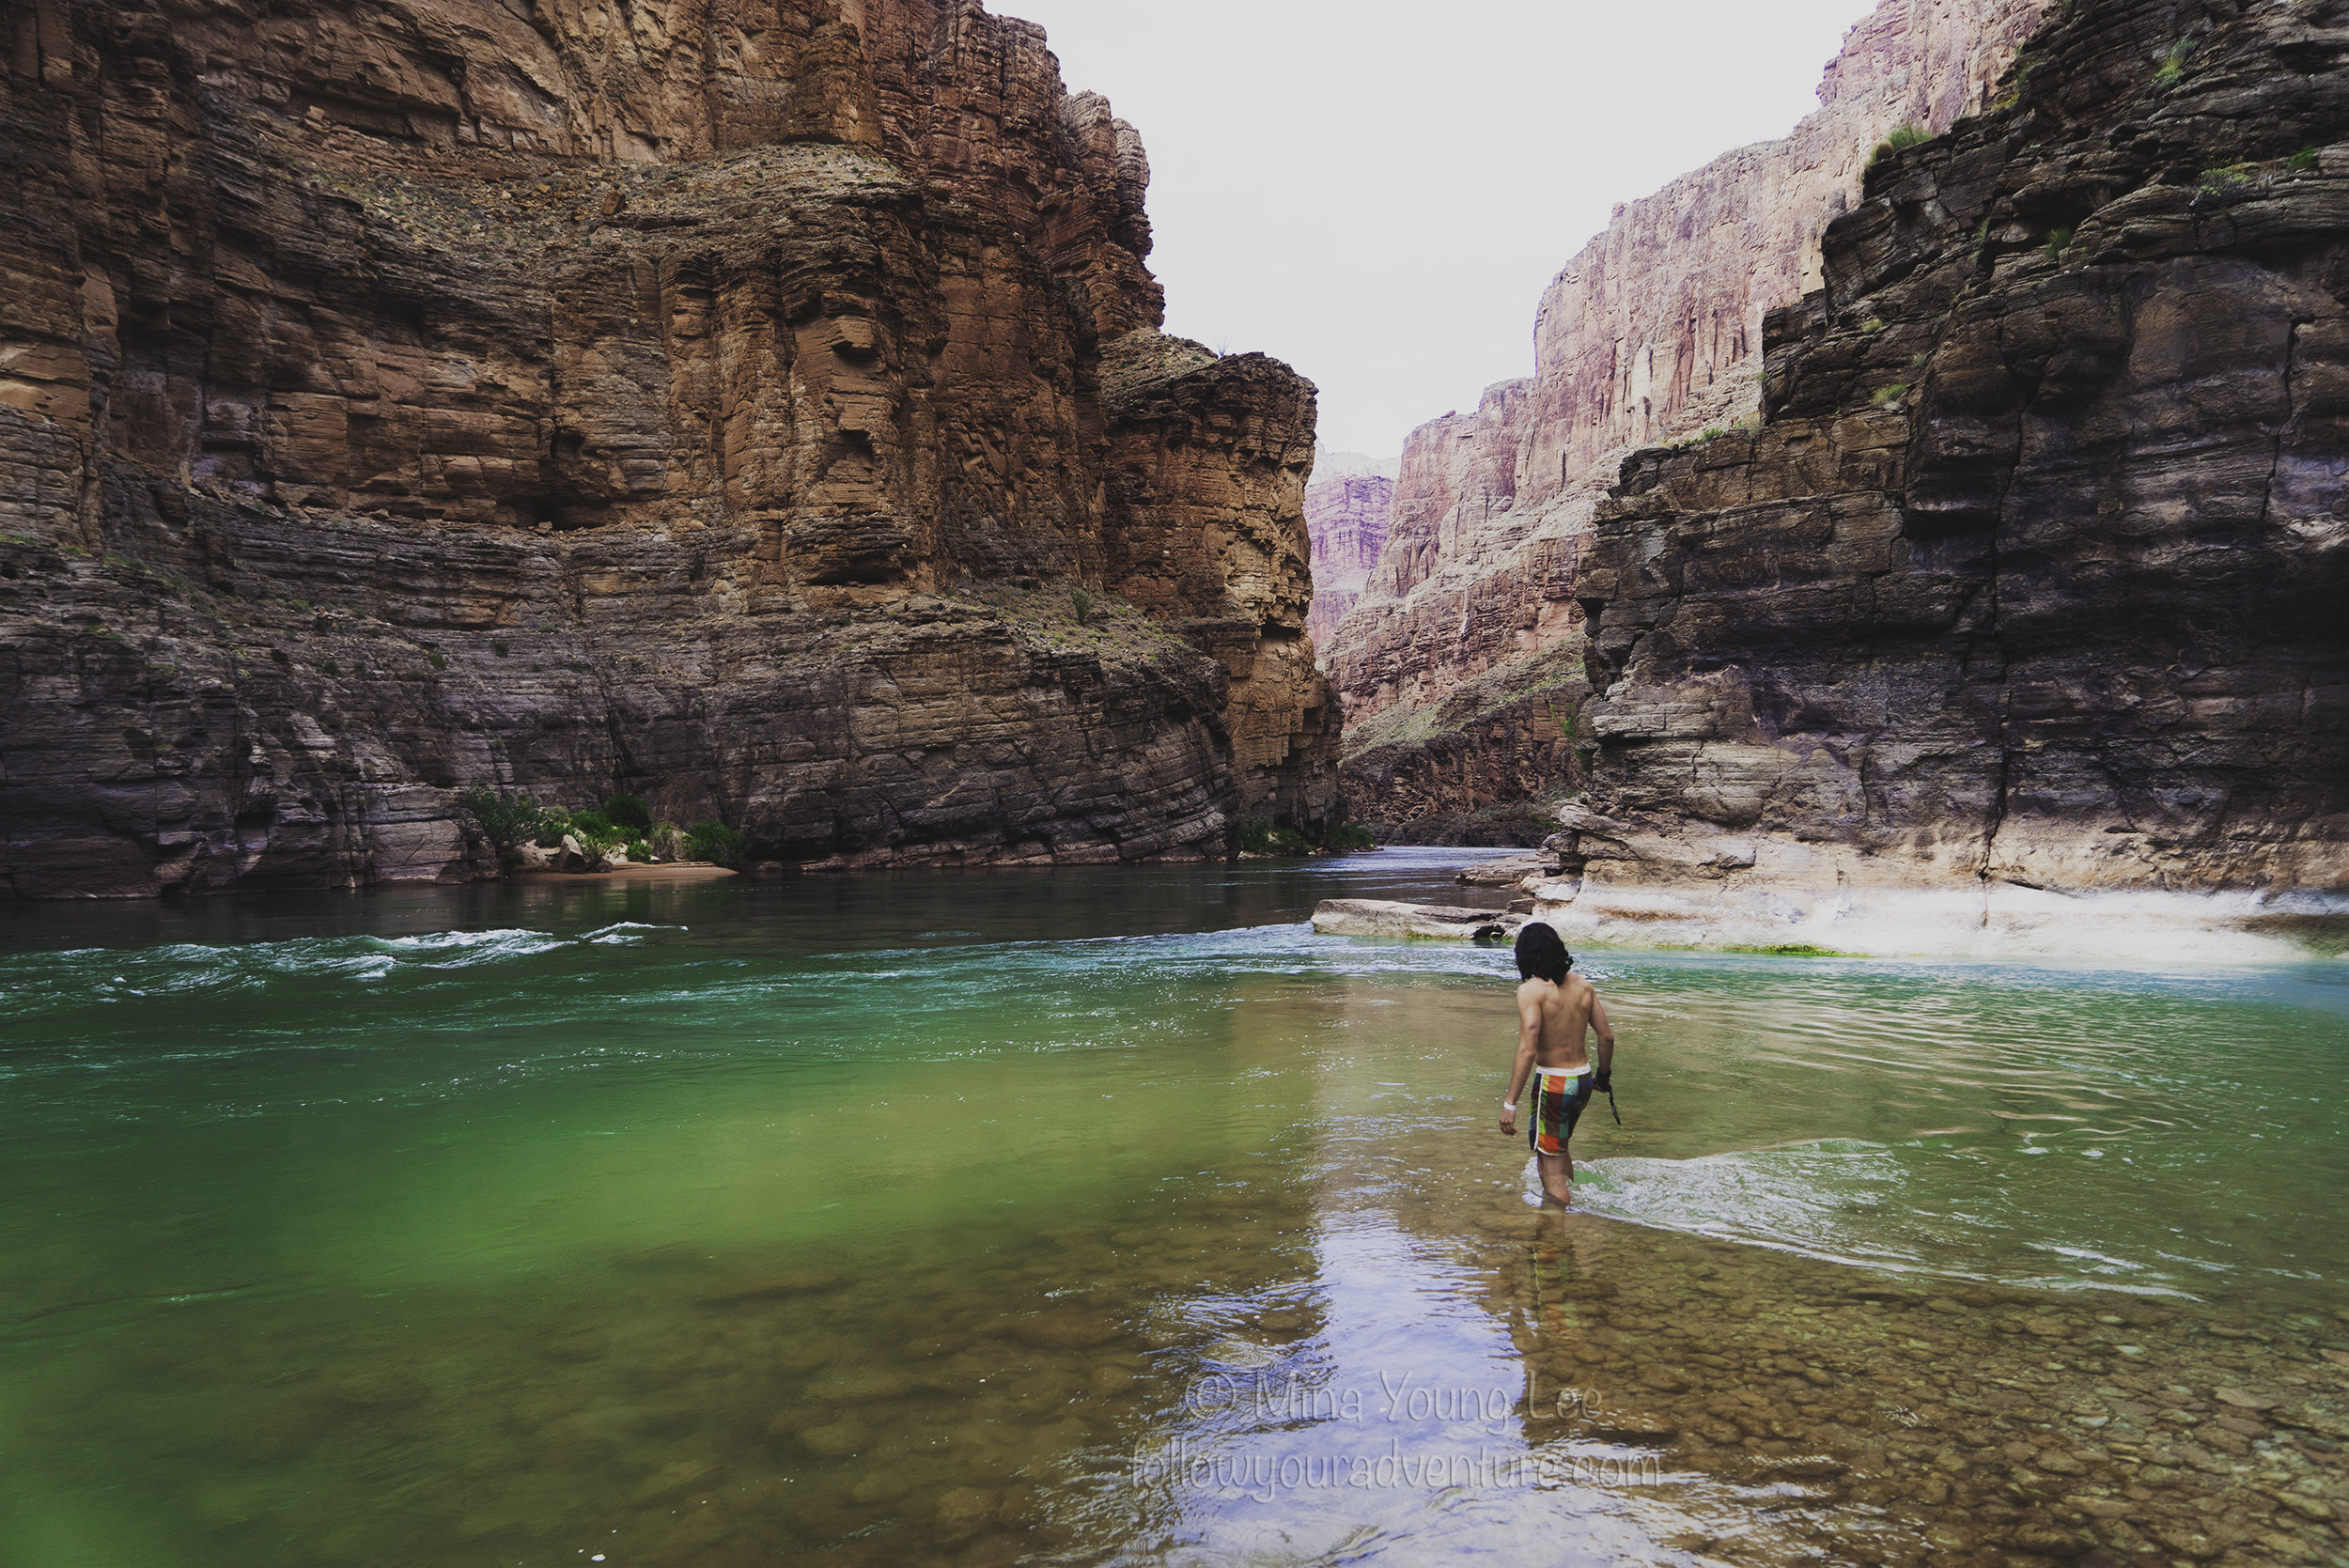 Adventurer Nick cools off in the river where Havasu Creek meets the Colorado River  Photograph by Mina Young Lee